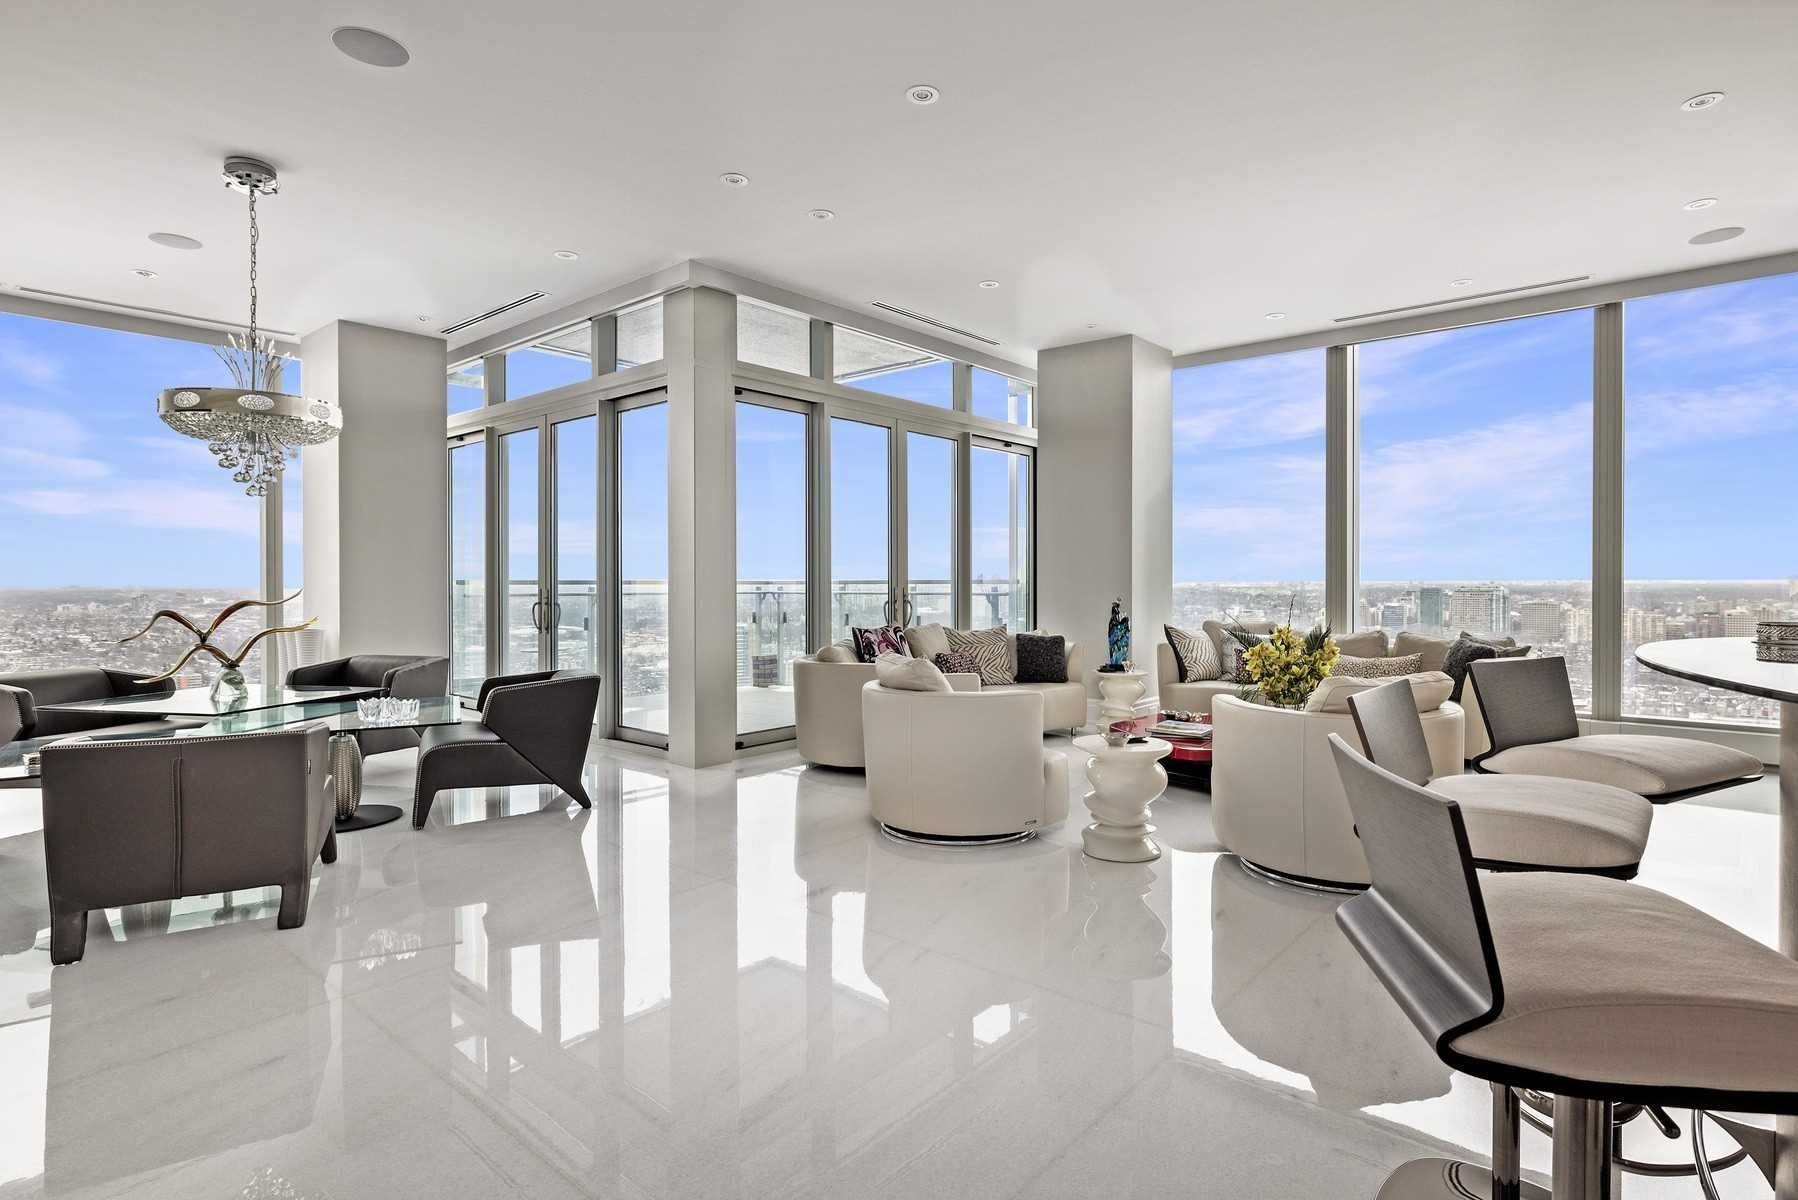 50 Yorkville Ave, unit 4001 for sale in Toronto - image #1